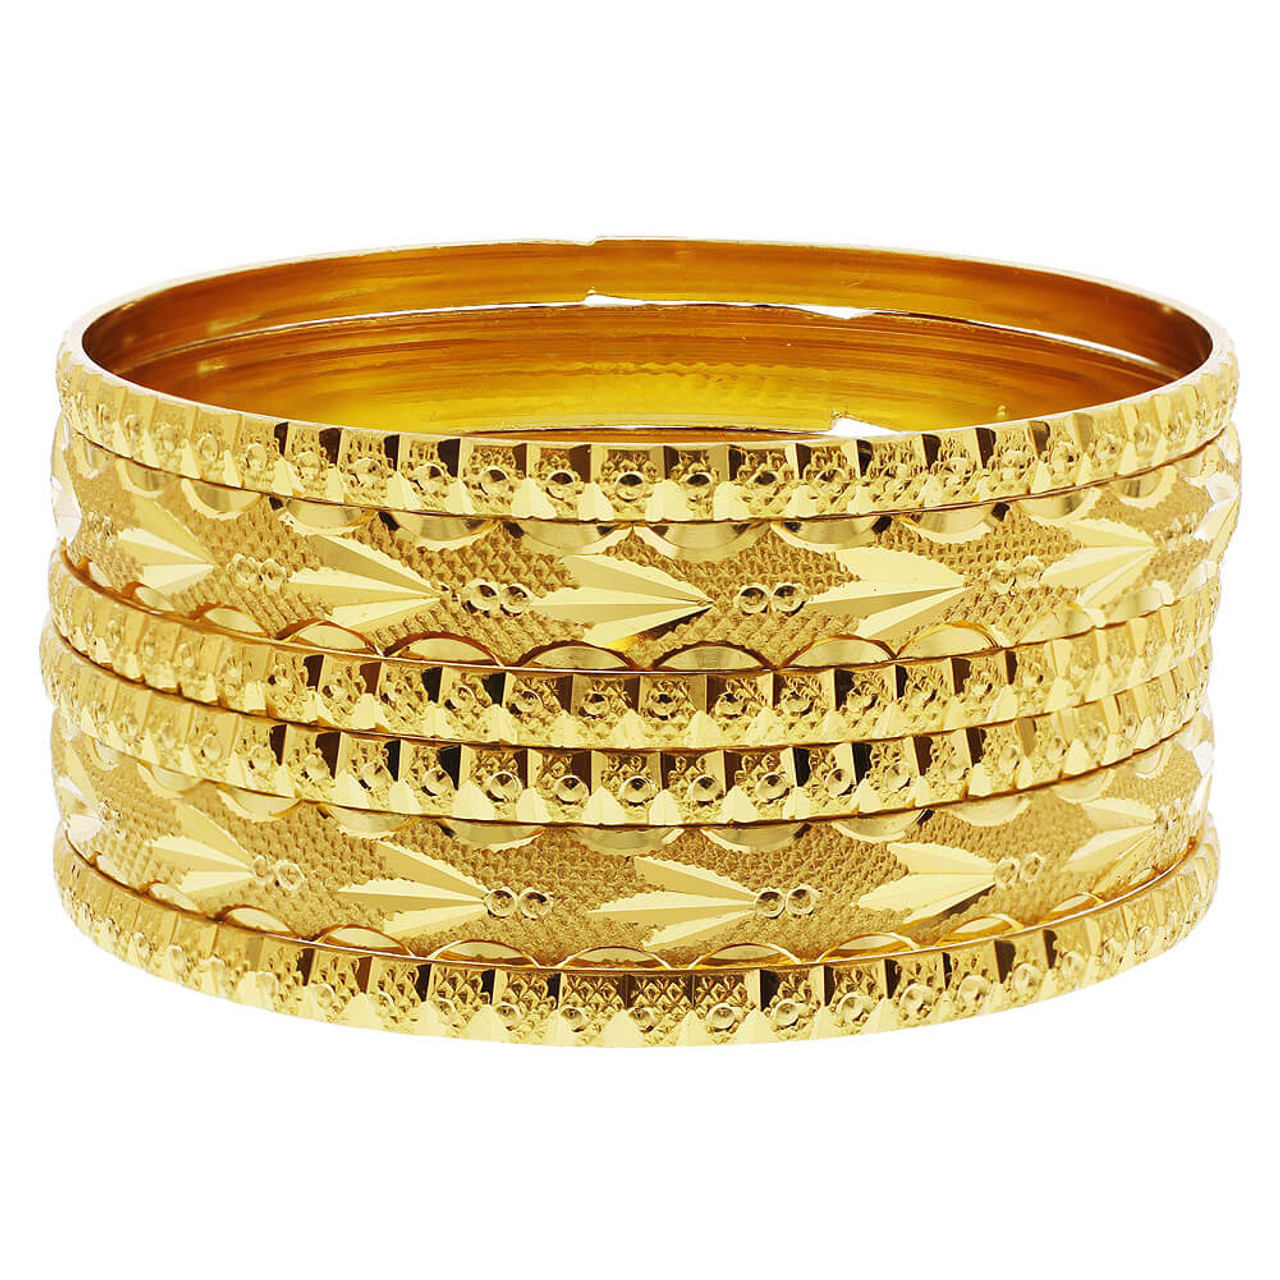 Carved Design Thick and Thin Bollywood Indian Bangle Bracelets Set